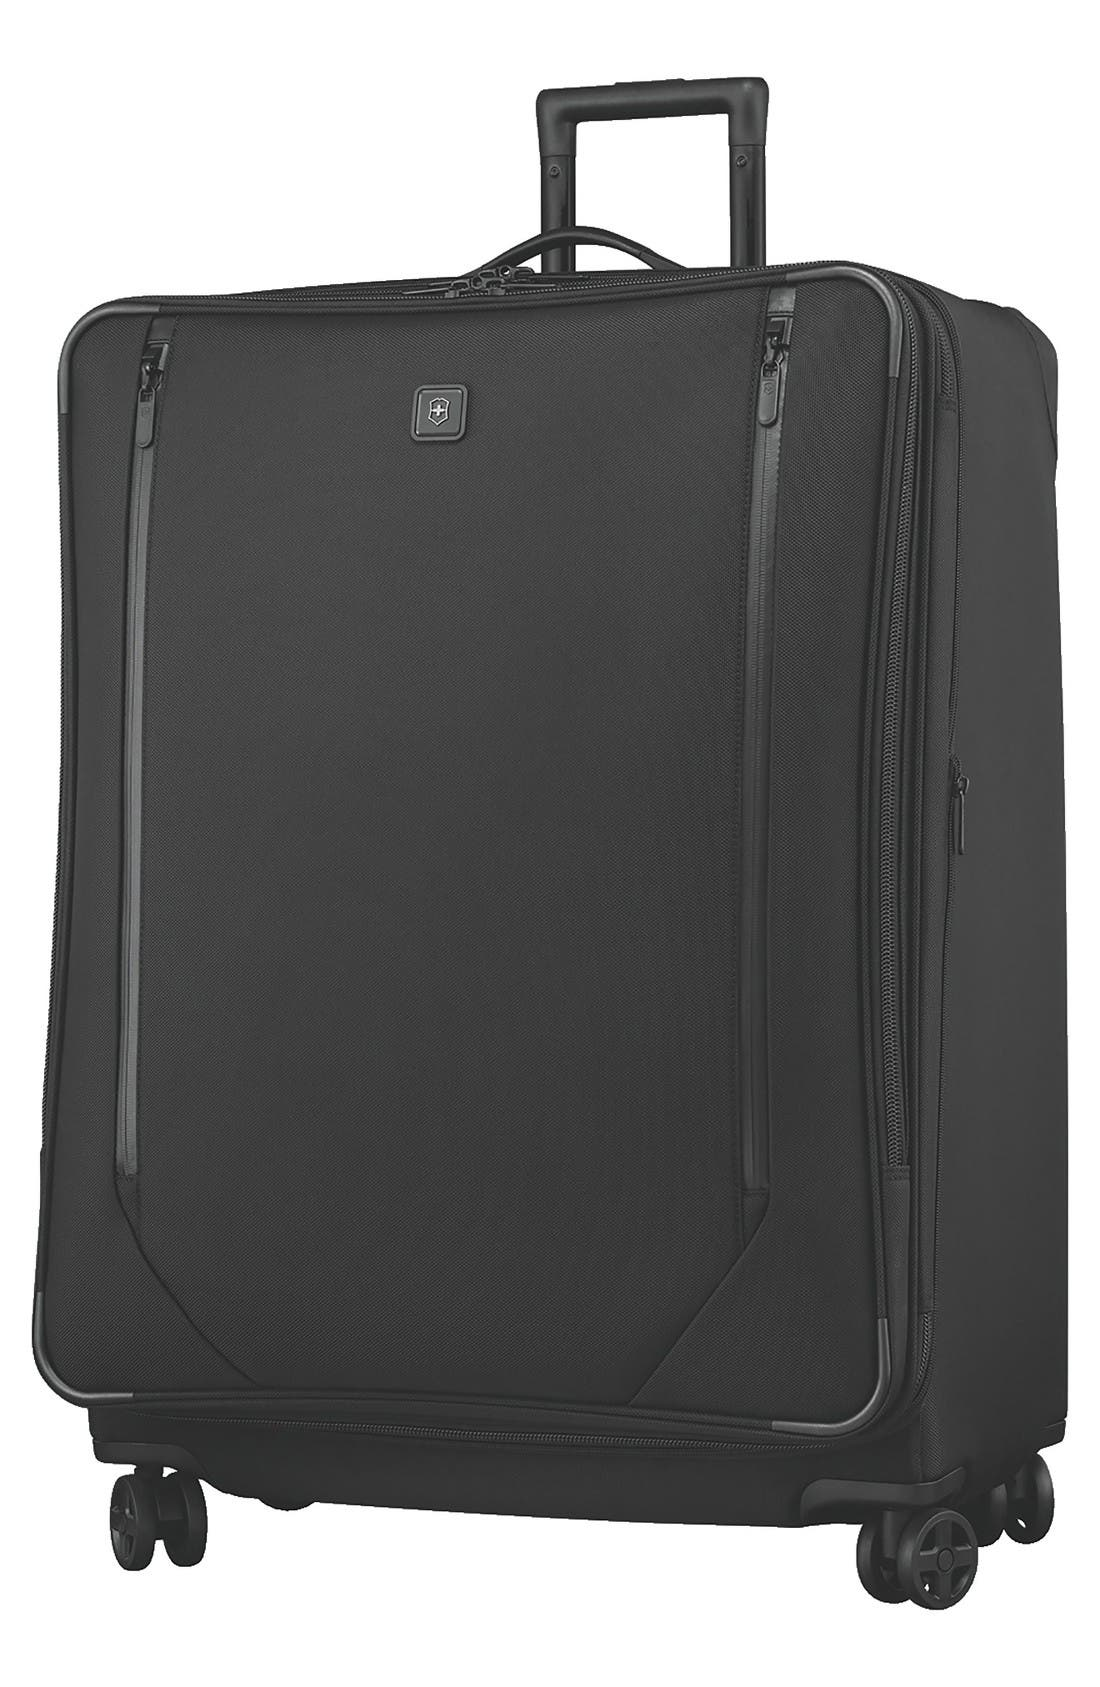 Victorinox Swiss Army® Lexicon 2.0 31 Inch Wheeled Suitcase